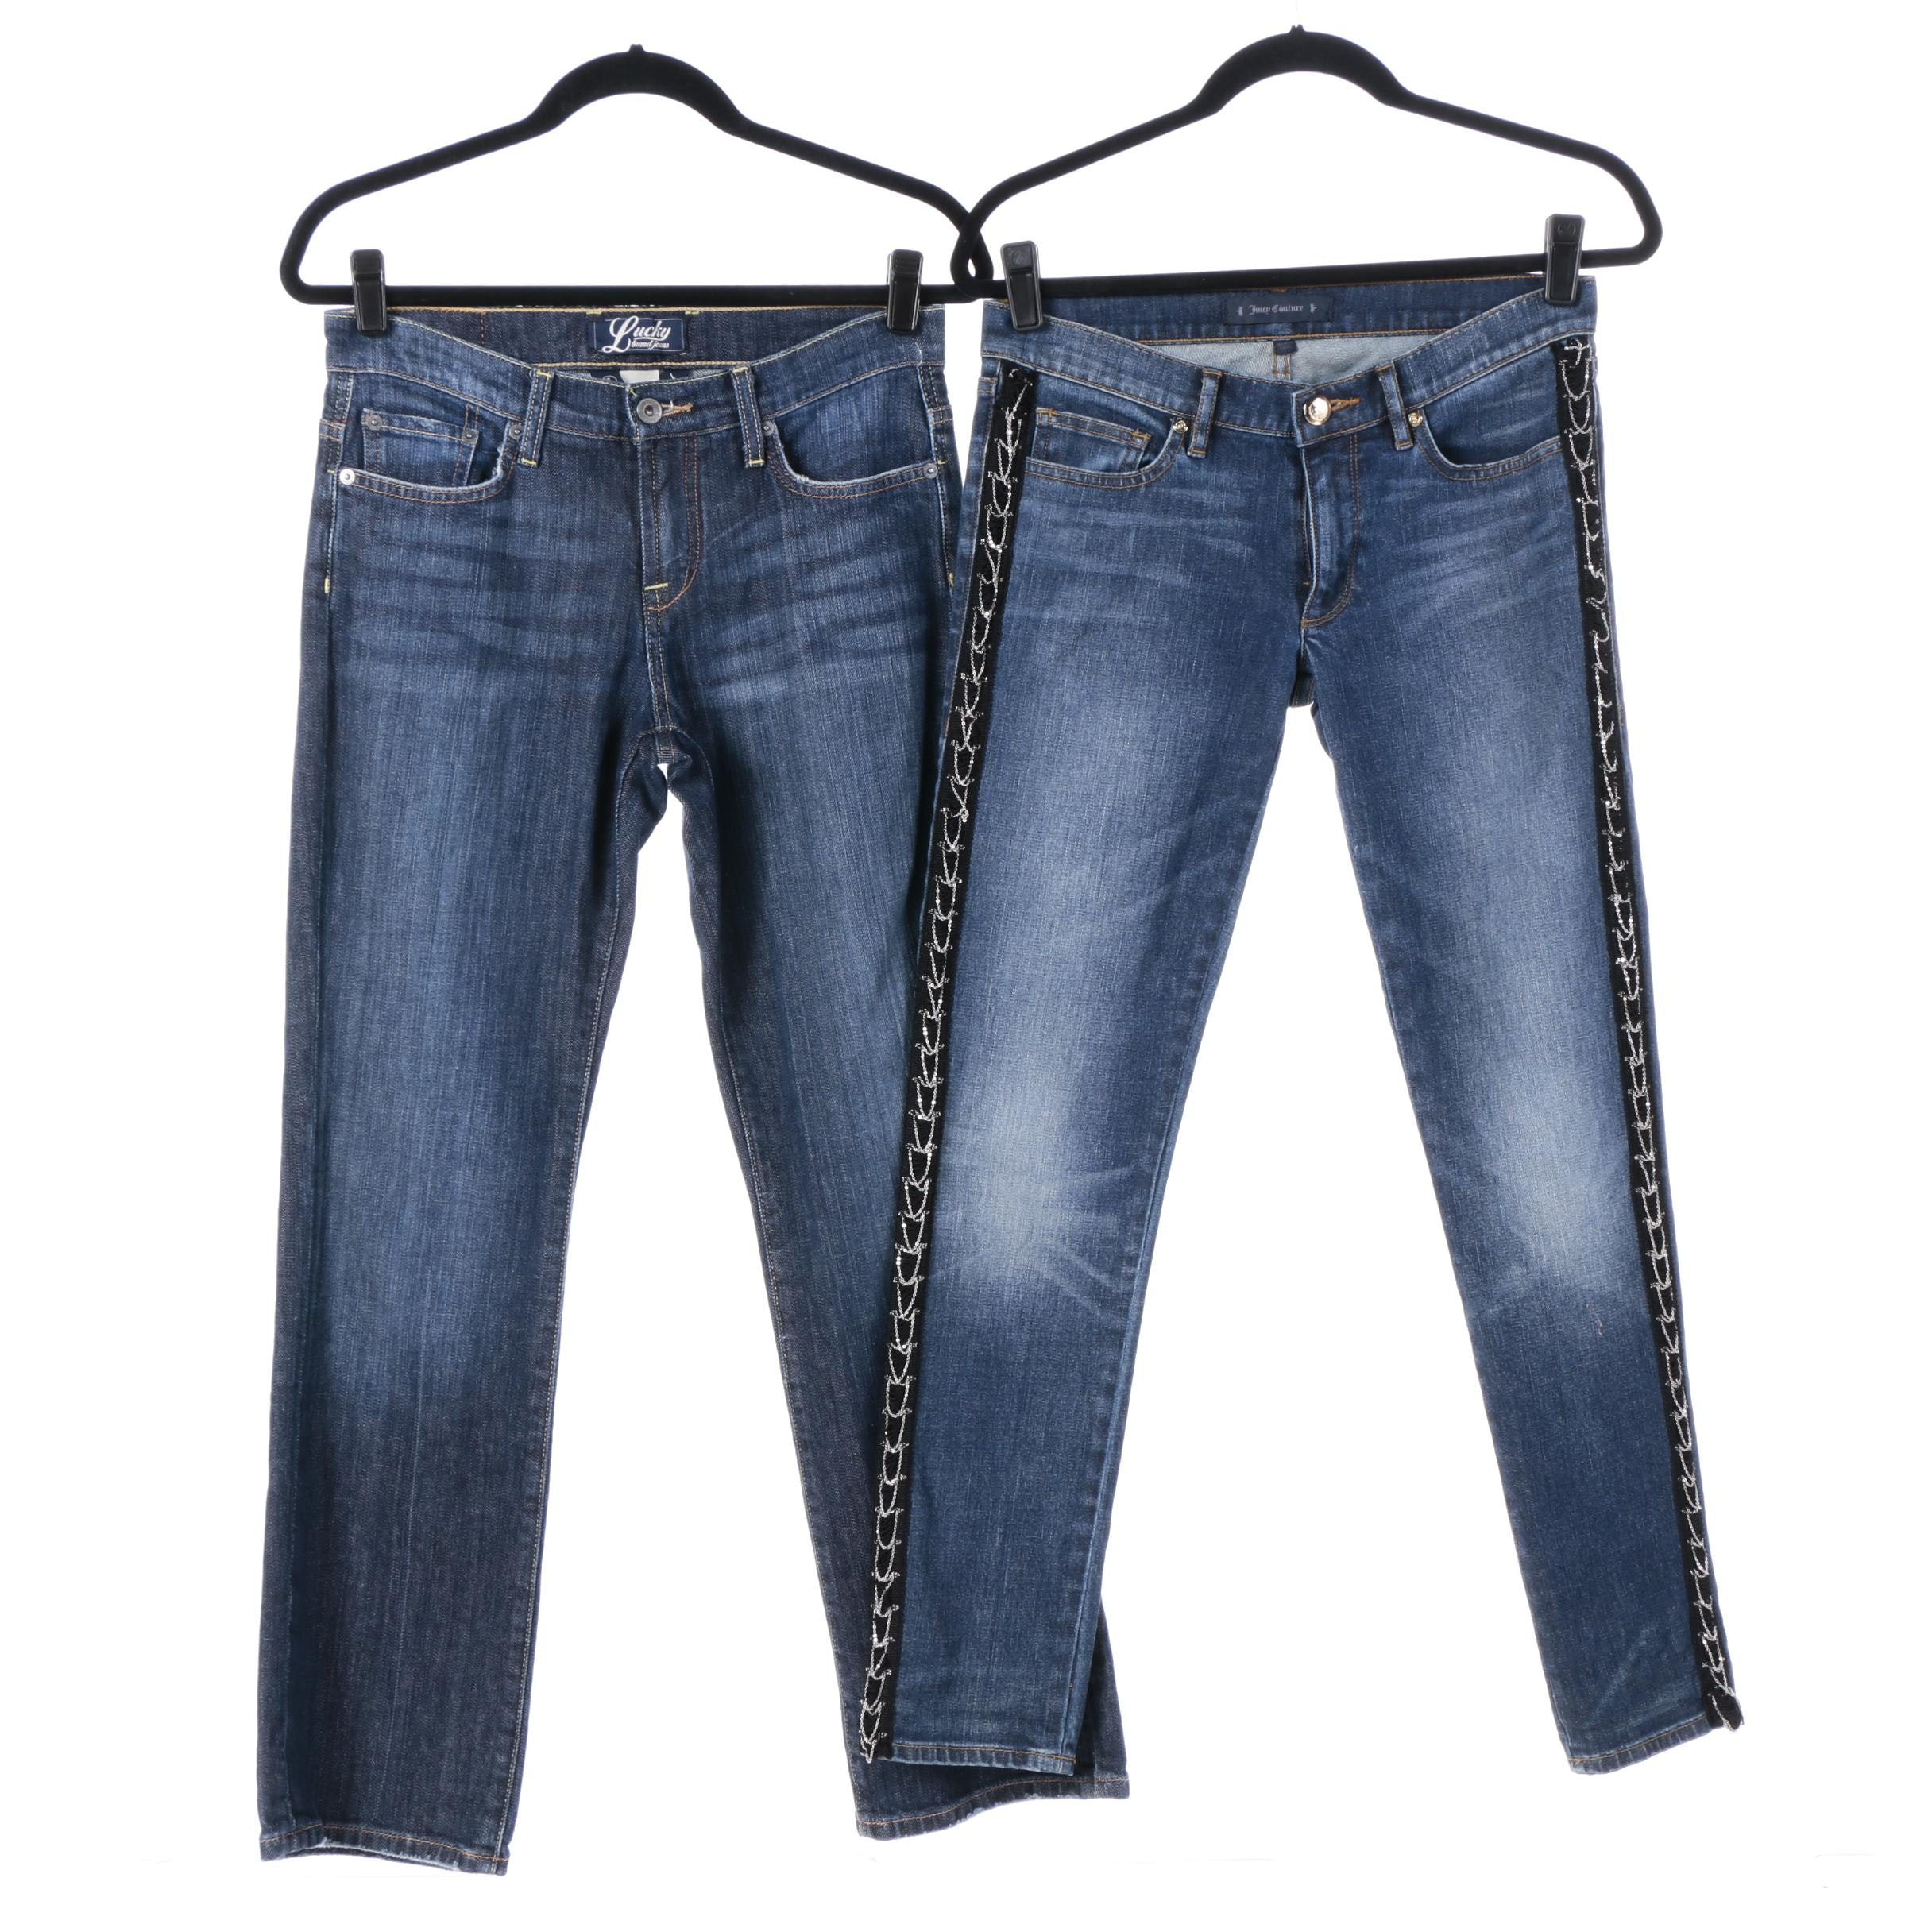 Women's Jeans Including Lucky Brand and Juicy Couture